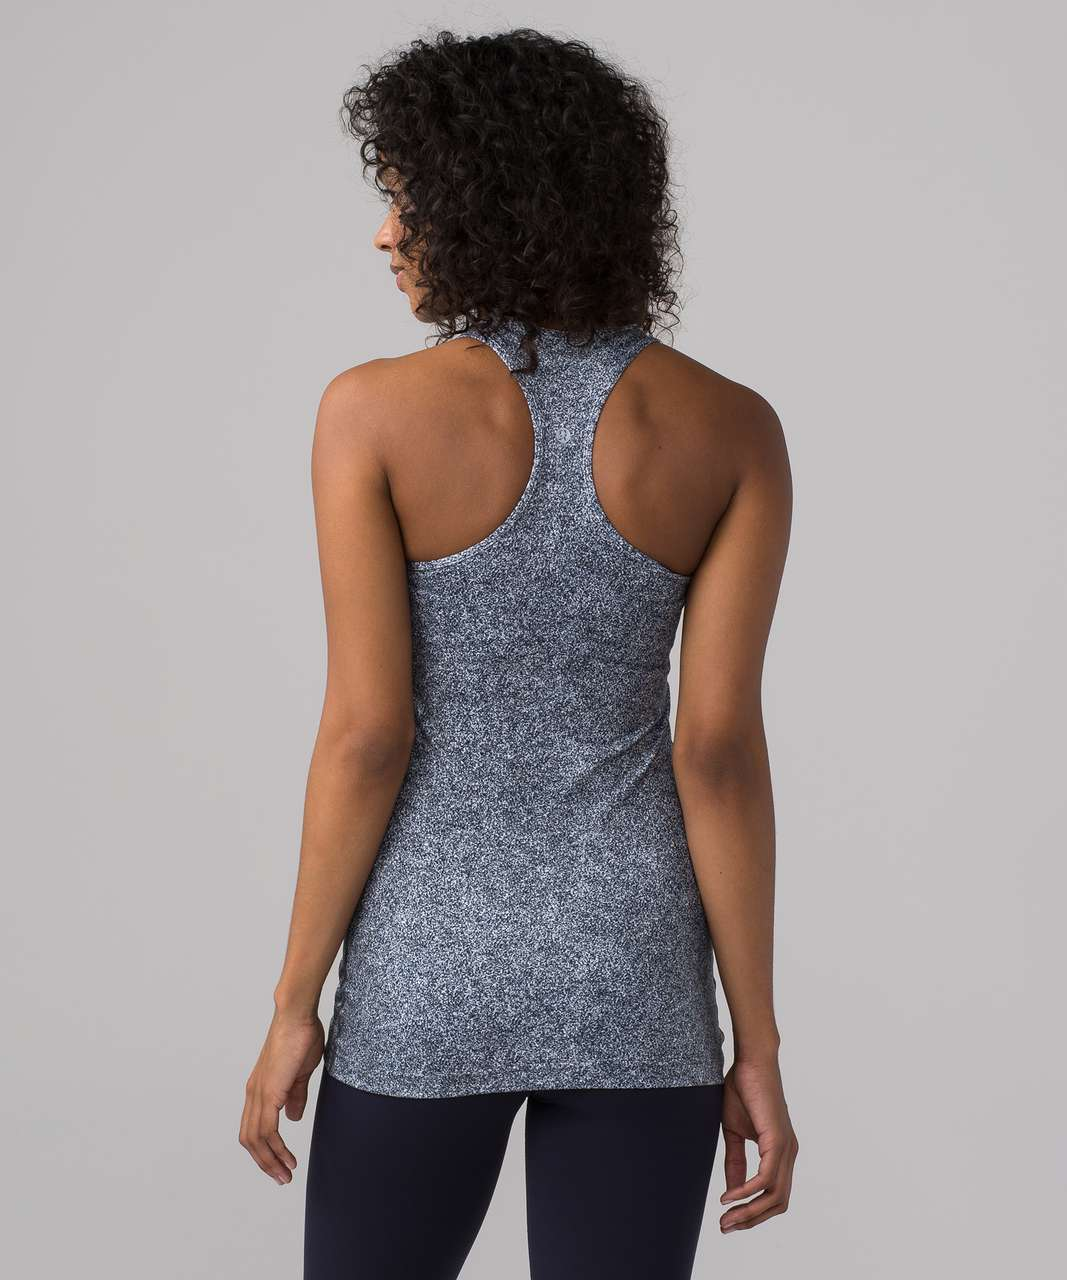 Lululemon Cool Racerback - Rio Mist White Black